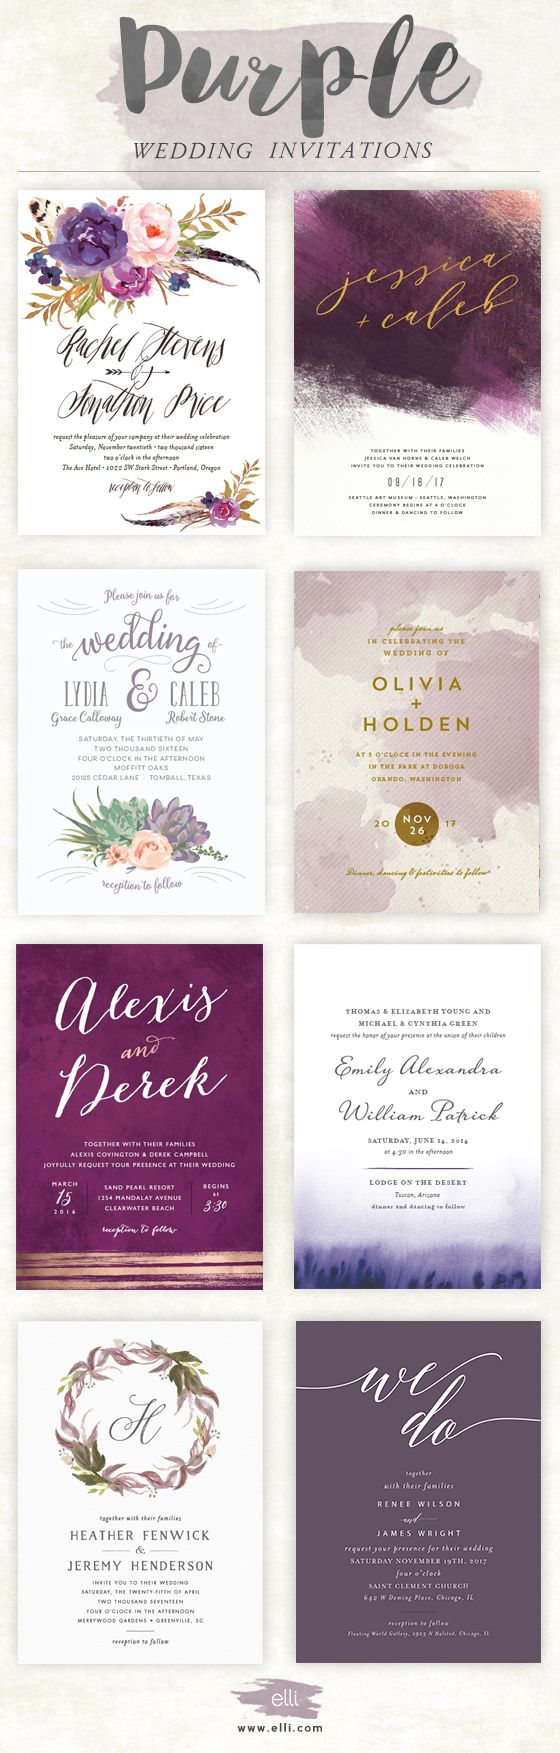 sample wedding invitation letter for uk visa%0A Gorgeous wedding invitations in shades of purple at Elli com   weddinginvitation